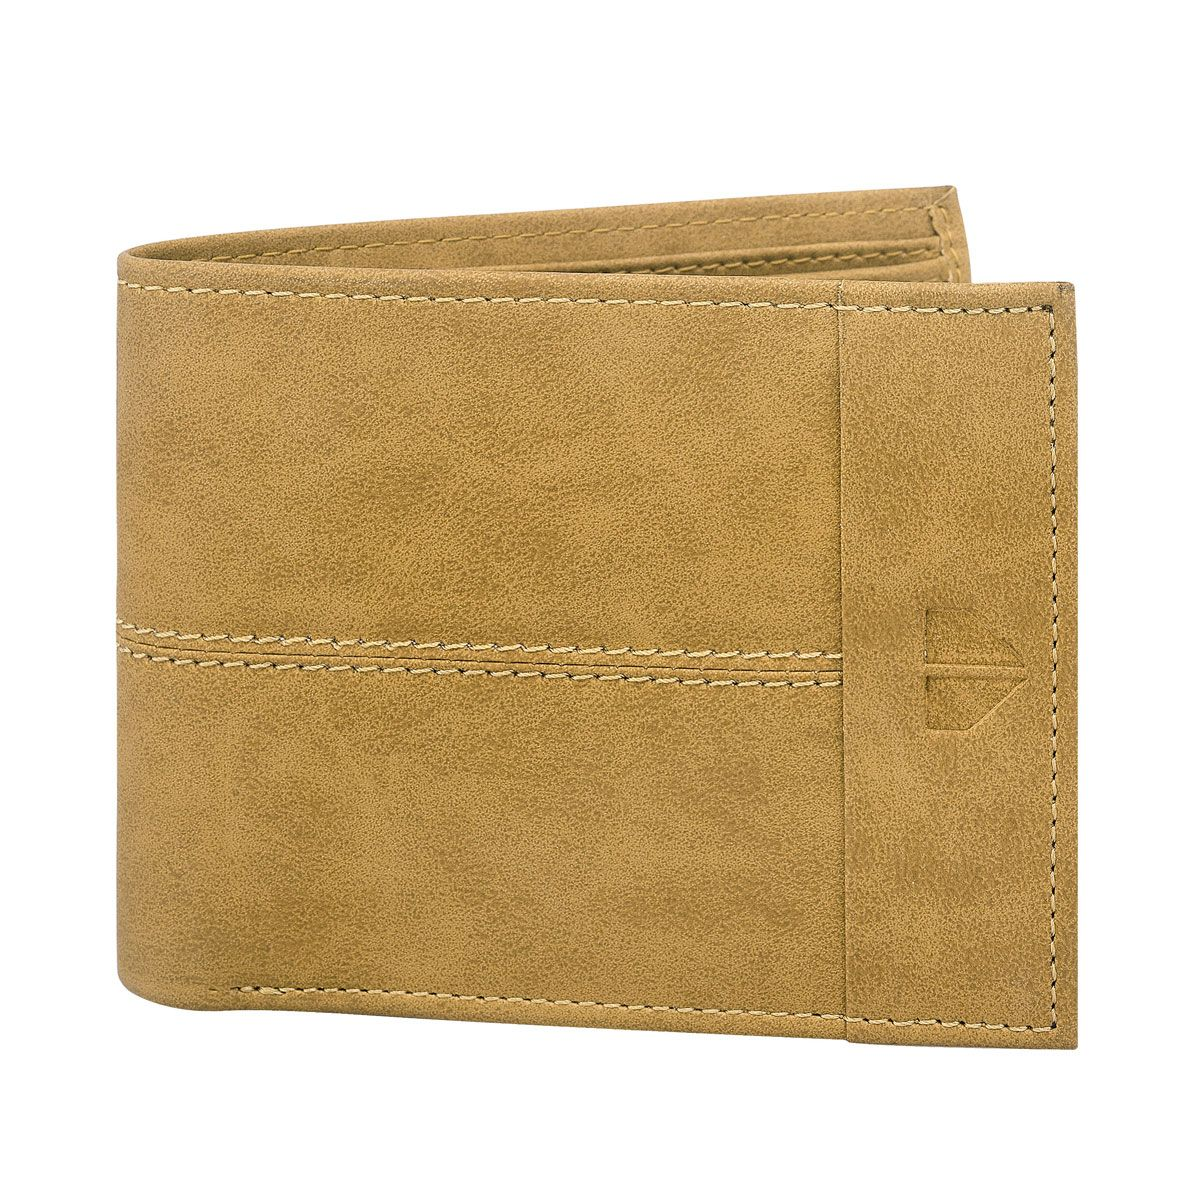 Walrus Invicta Beige Color Men Genuine Leather Wallet (WW-IVT-16)